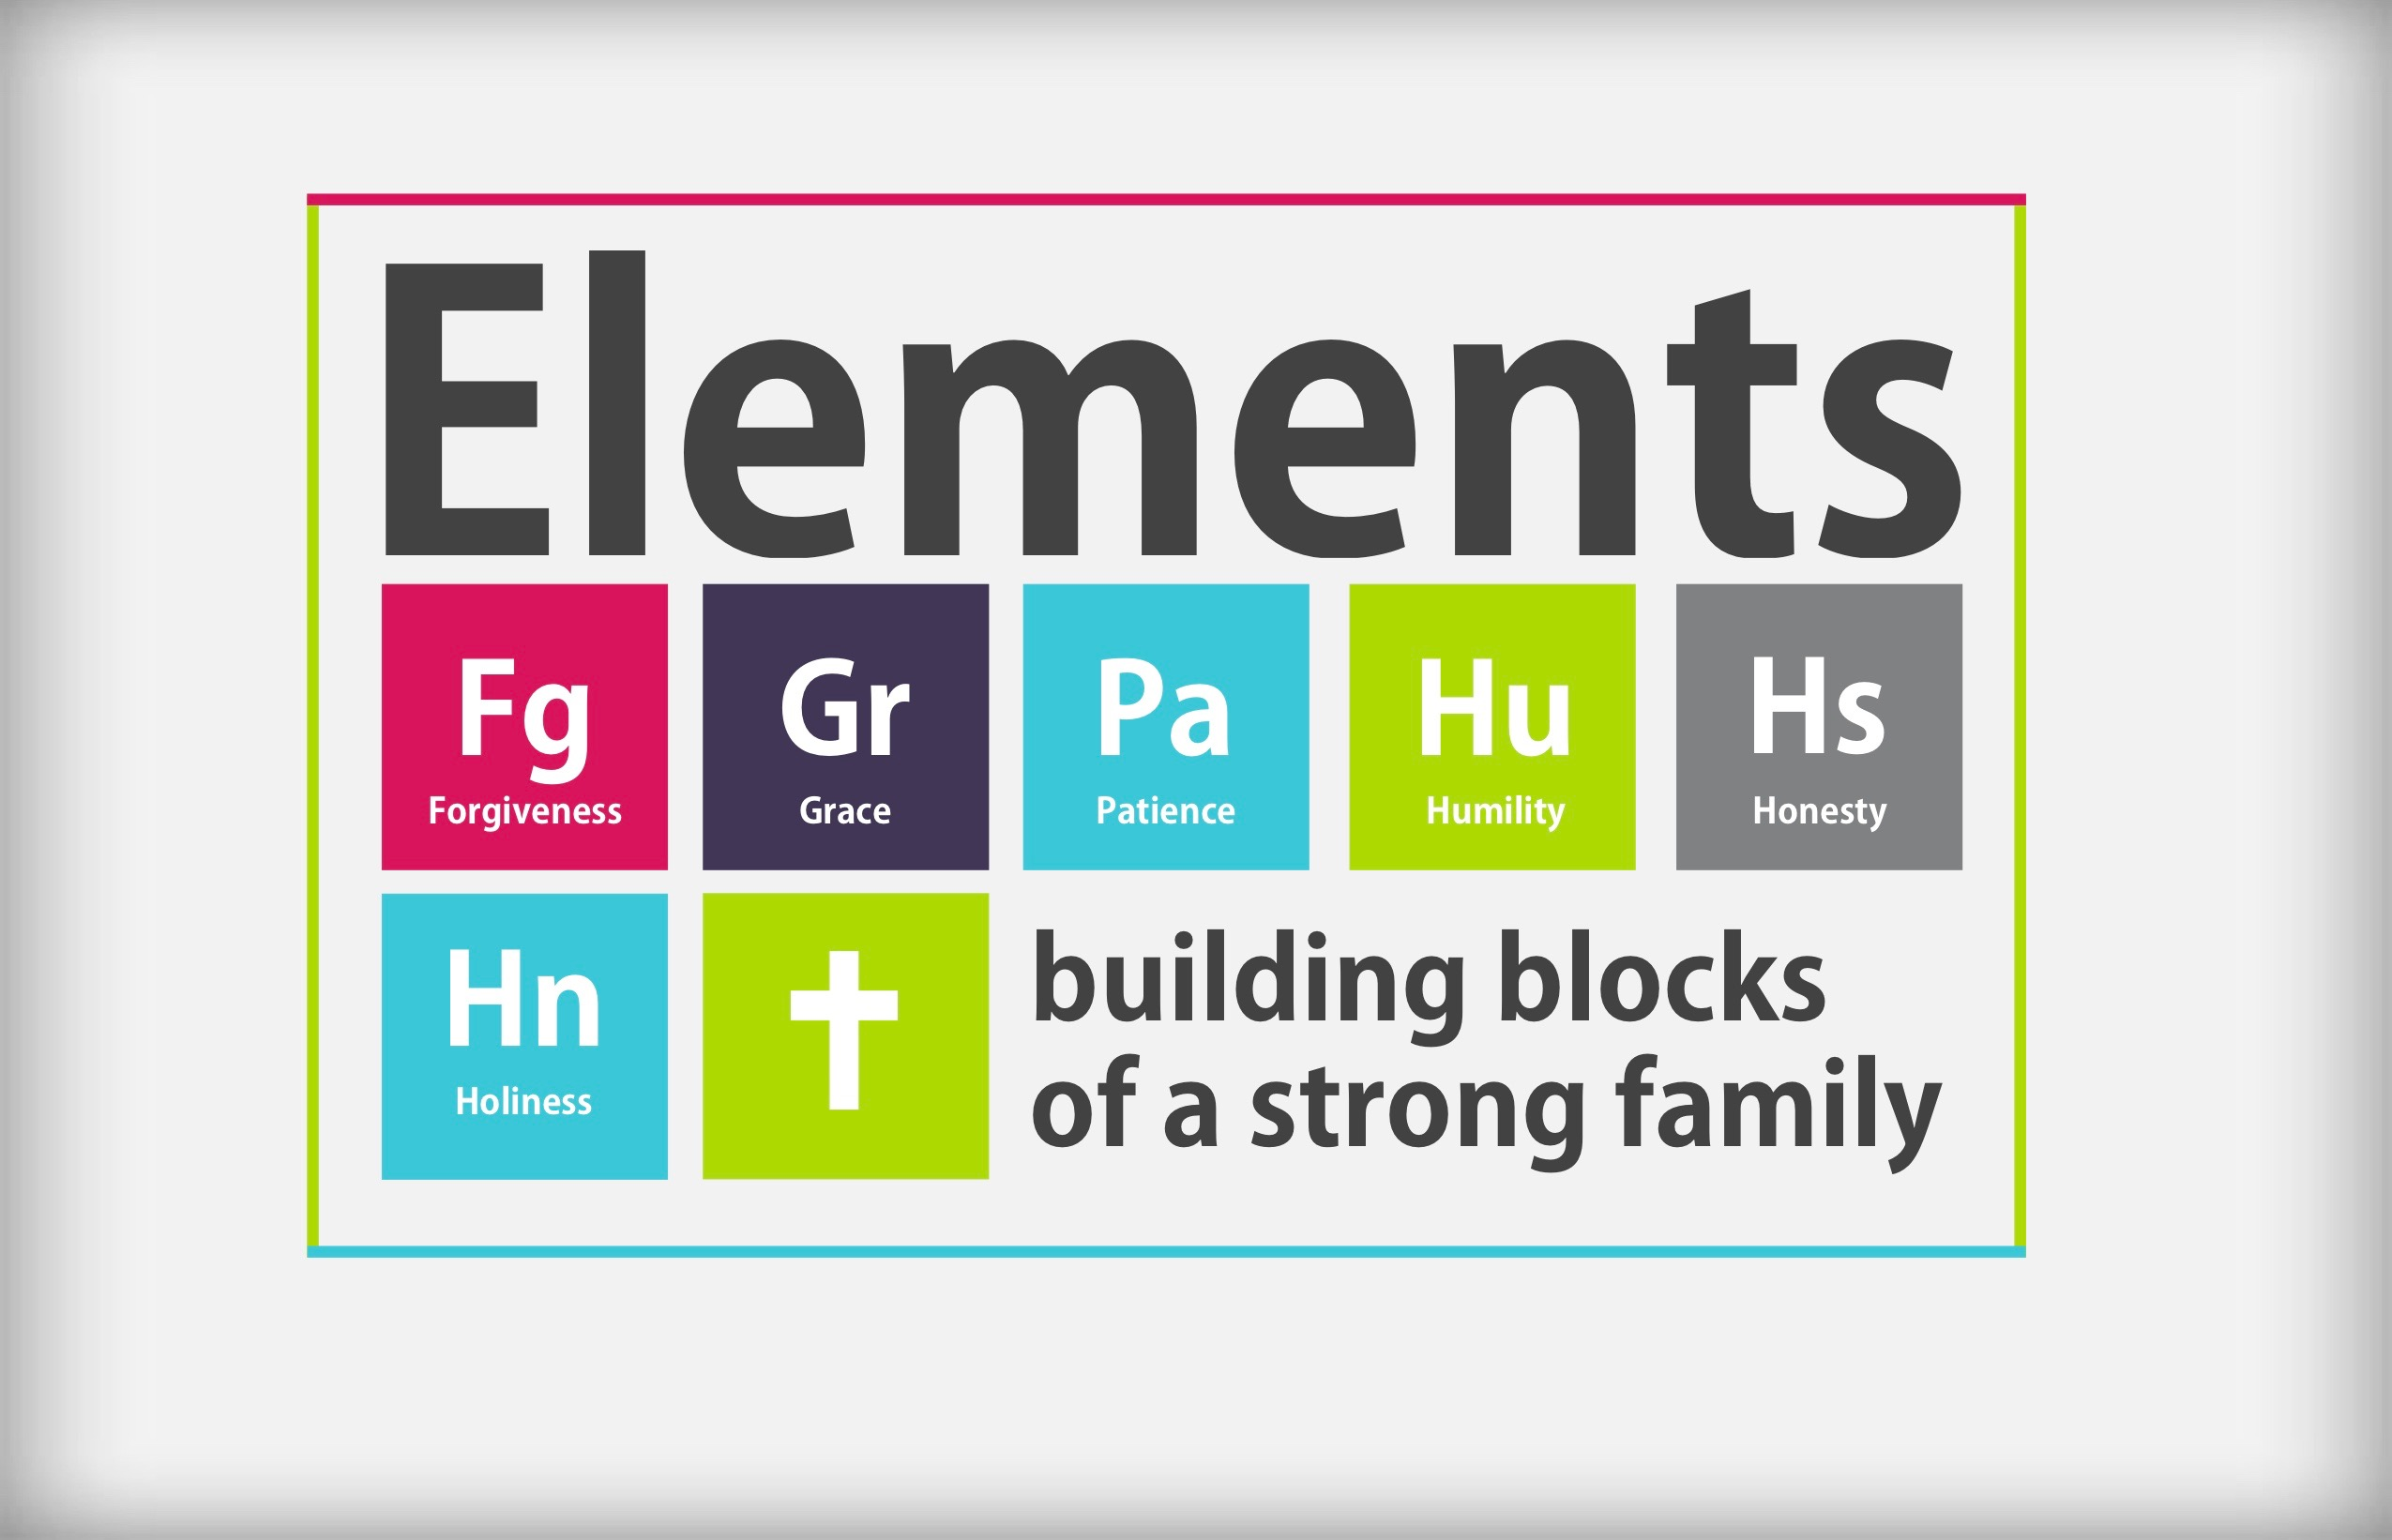 Elements: Building Blocks of A Strong Family